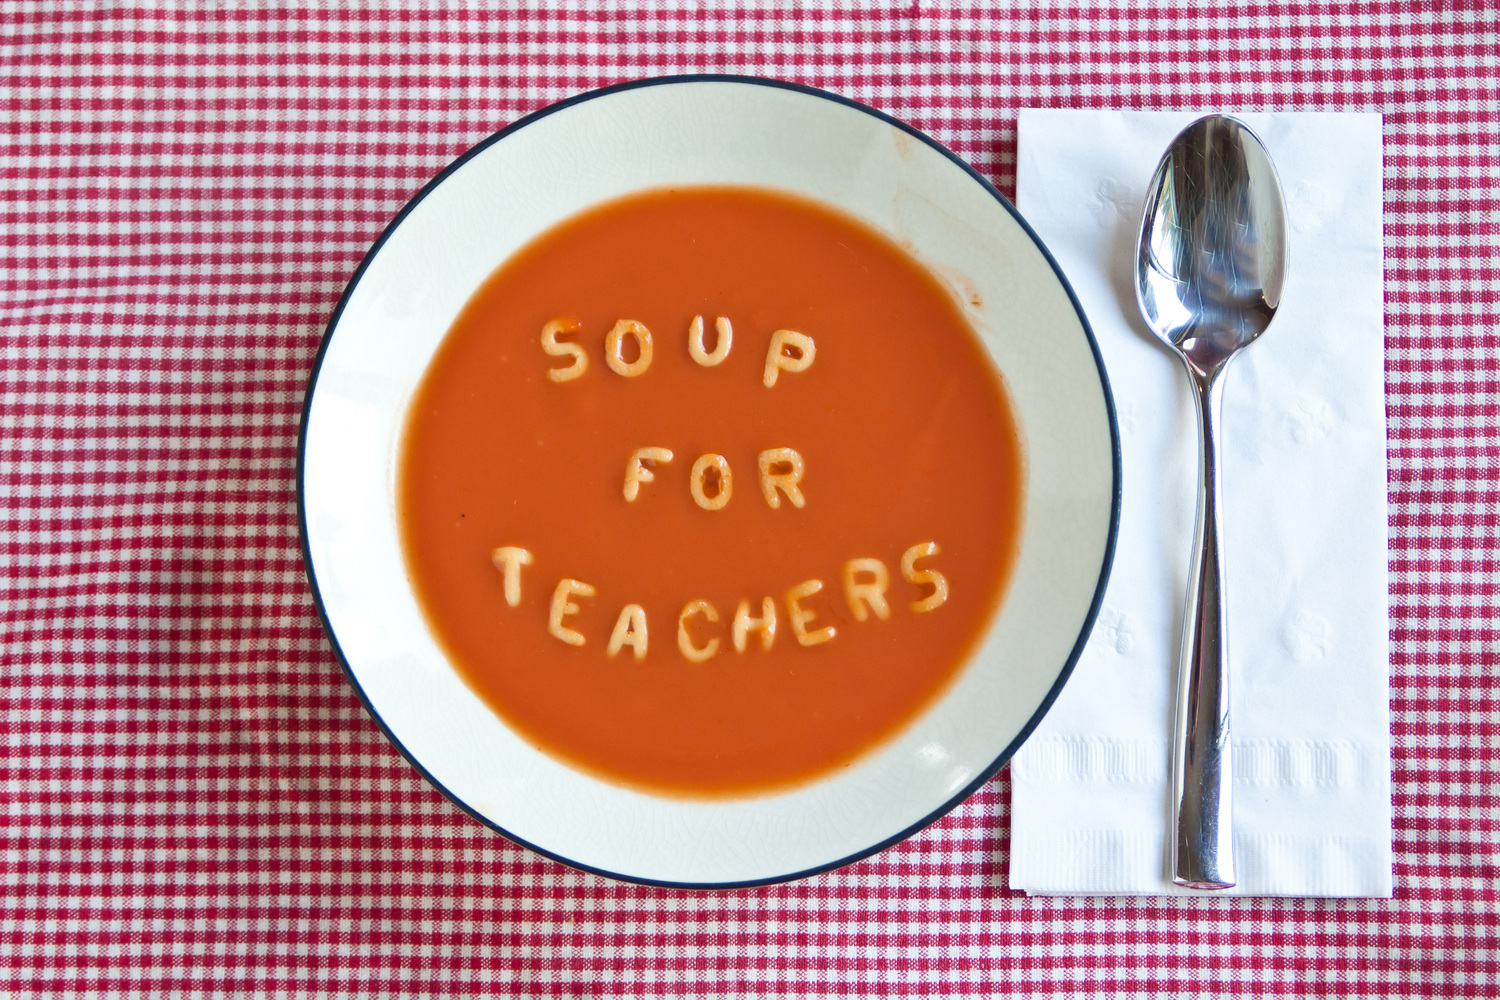 Soup for Teachers